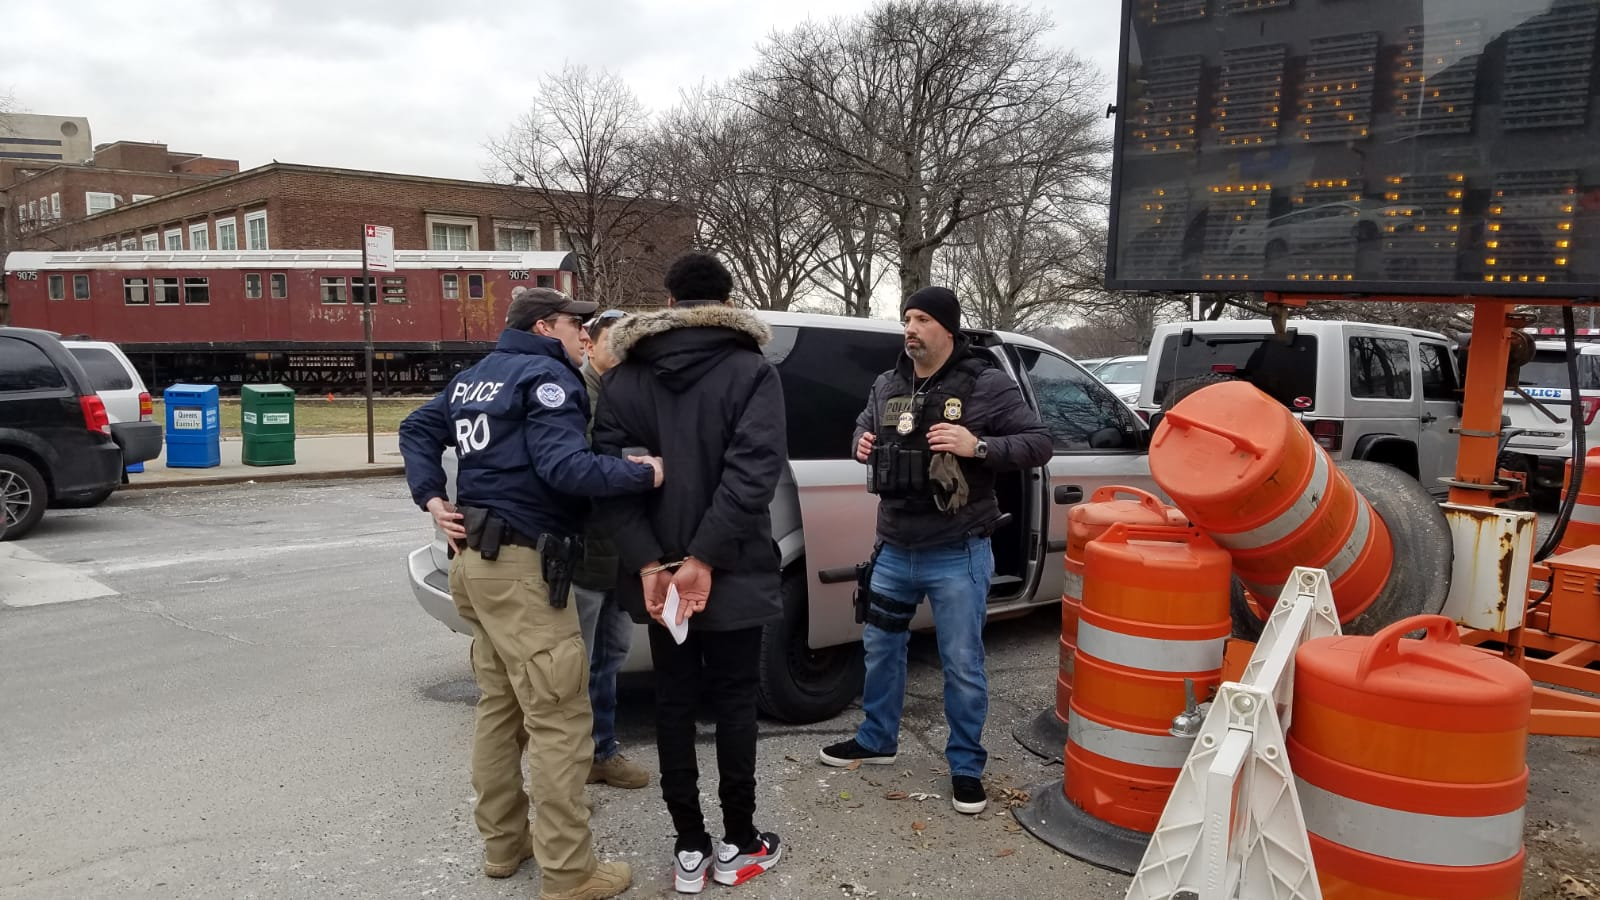 A man was arrested outside Queens Criminal Courthouse on Jan. 16. Photo obtained by the  Eagle.